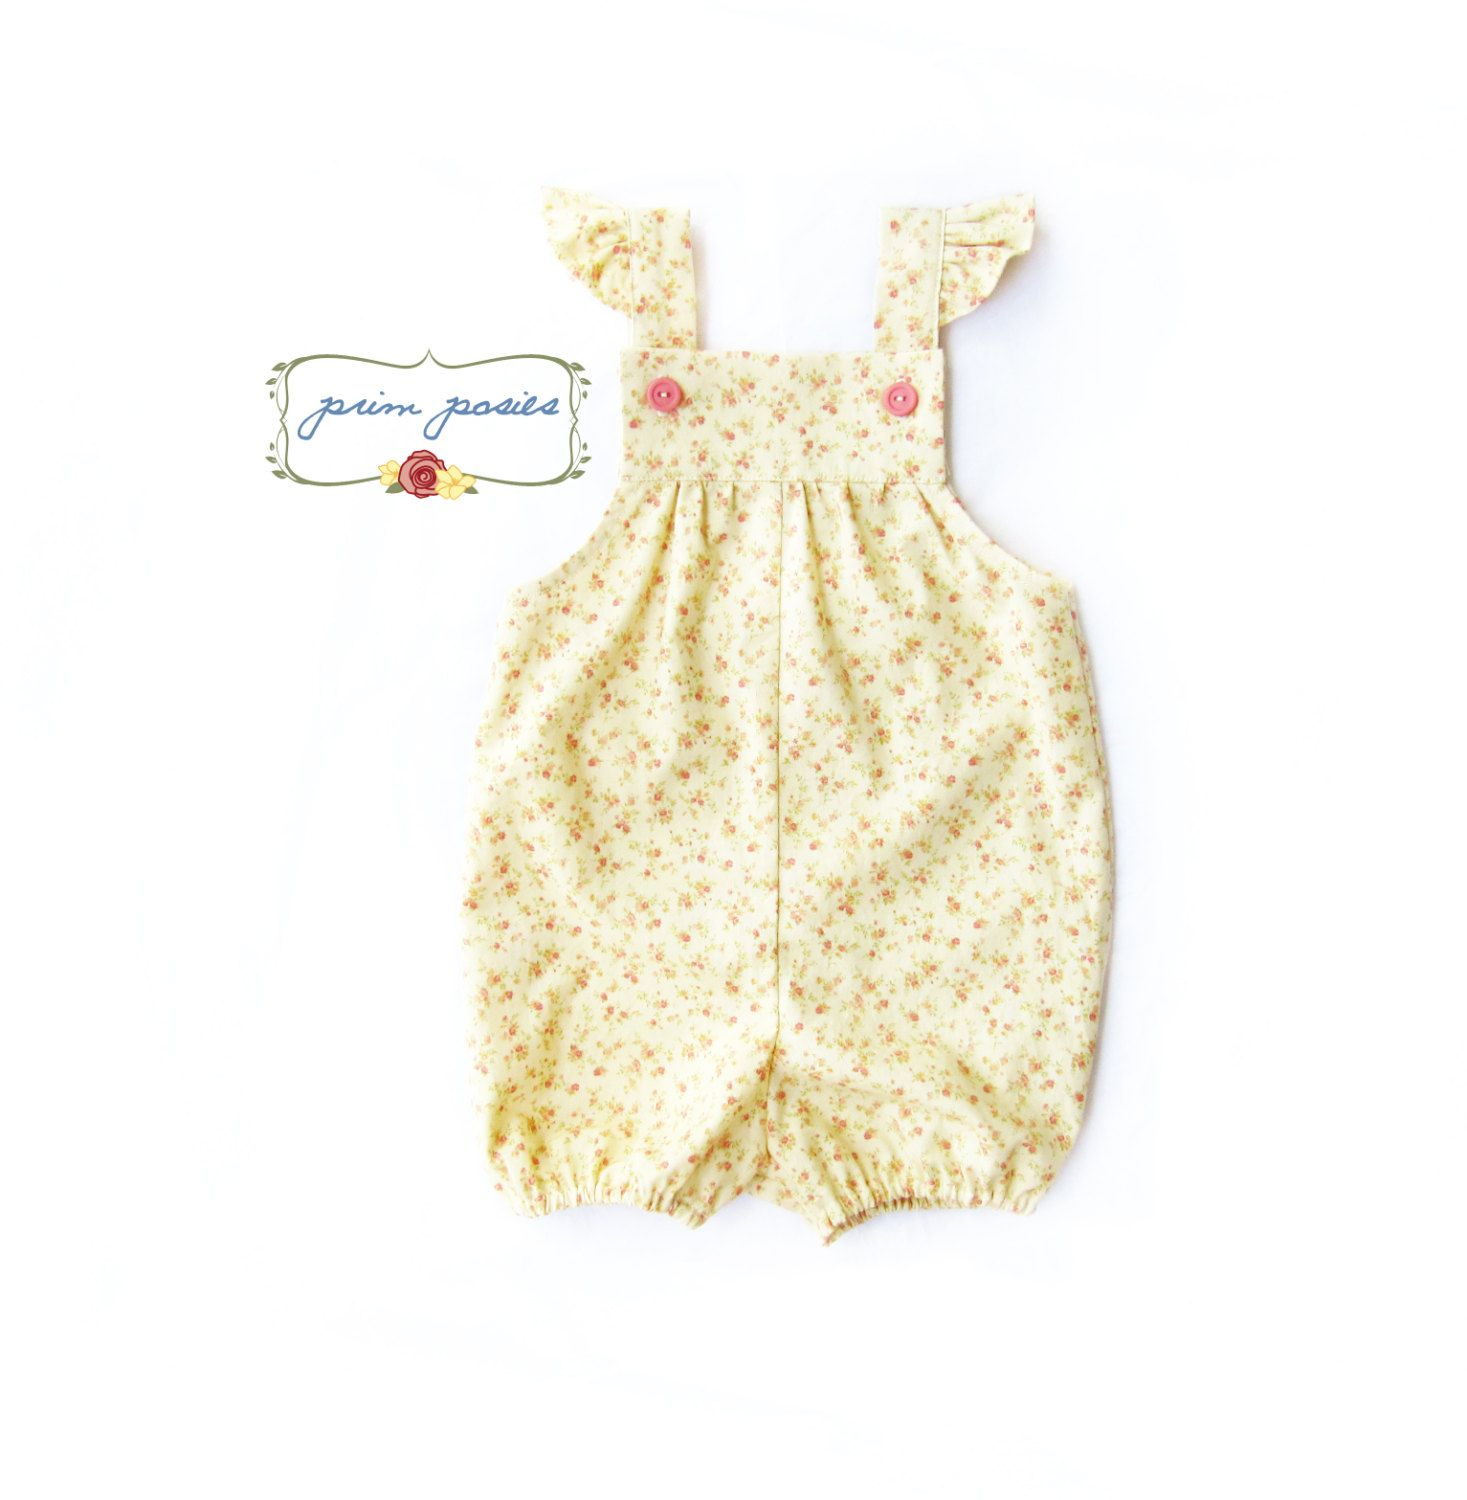 Baby Girl Overalls Cotton Baby Romper 12 Month Girl Clothes Baby